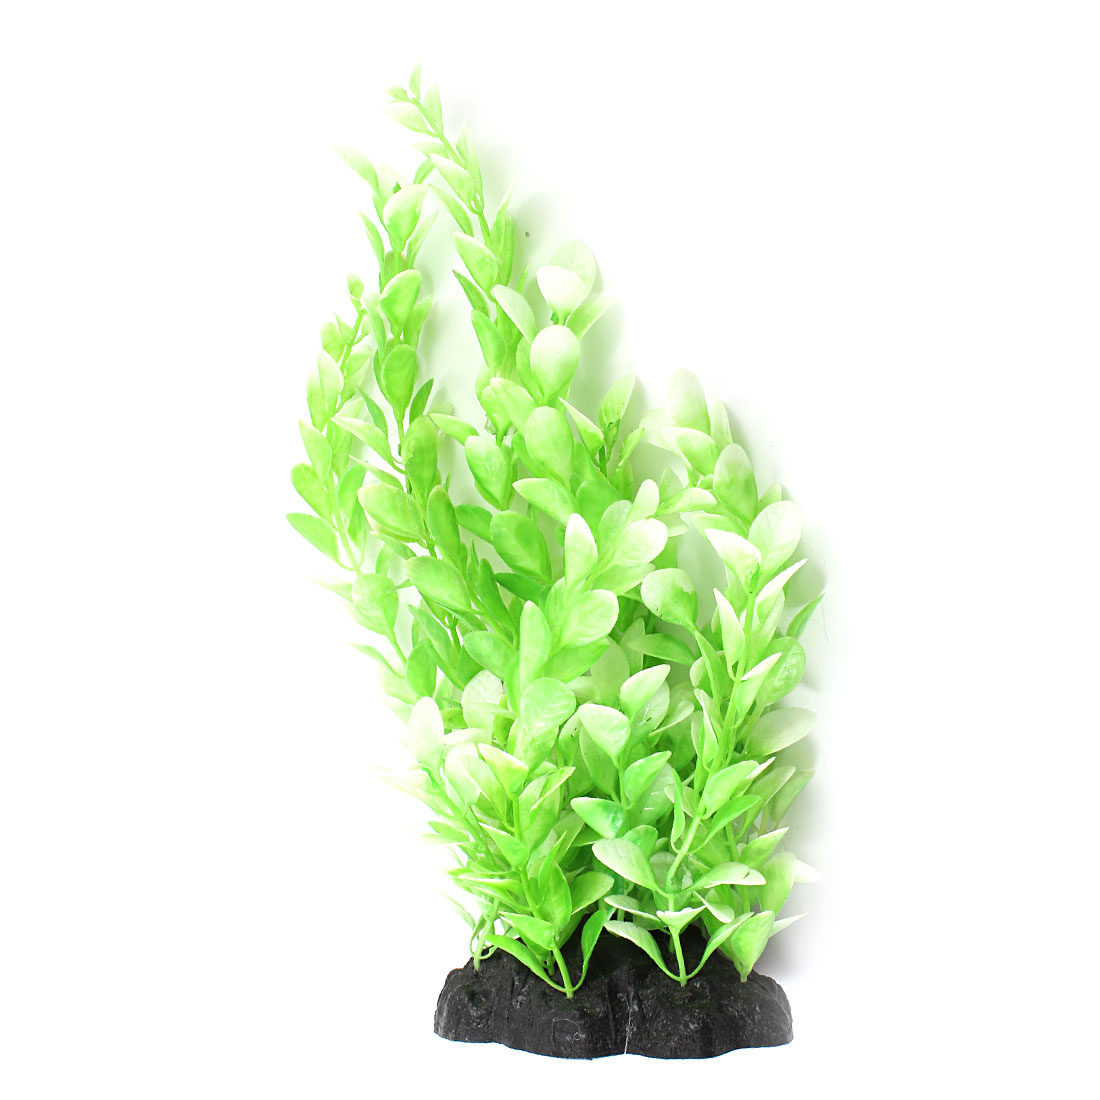 "Aquarium Fish Tank Ornament Landscaping Artificial Emulational Underwater Water Plant Grass Decor Green White 8.7"" Height"